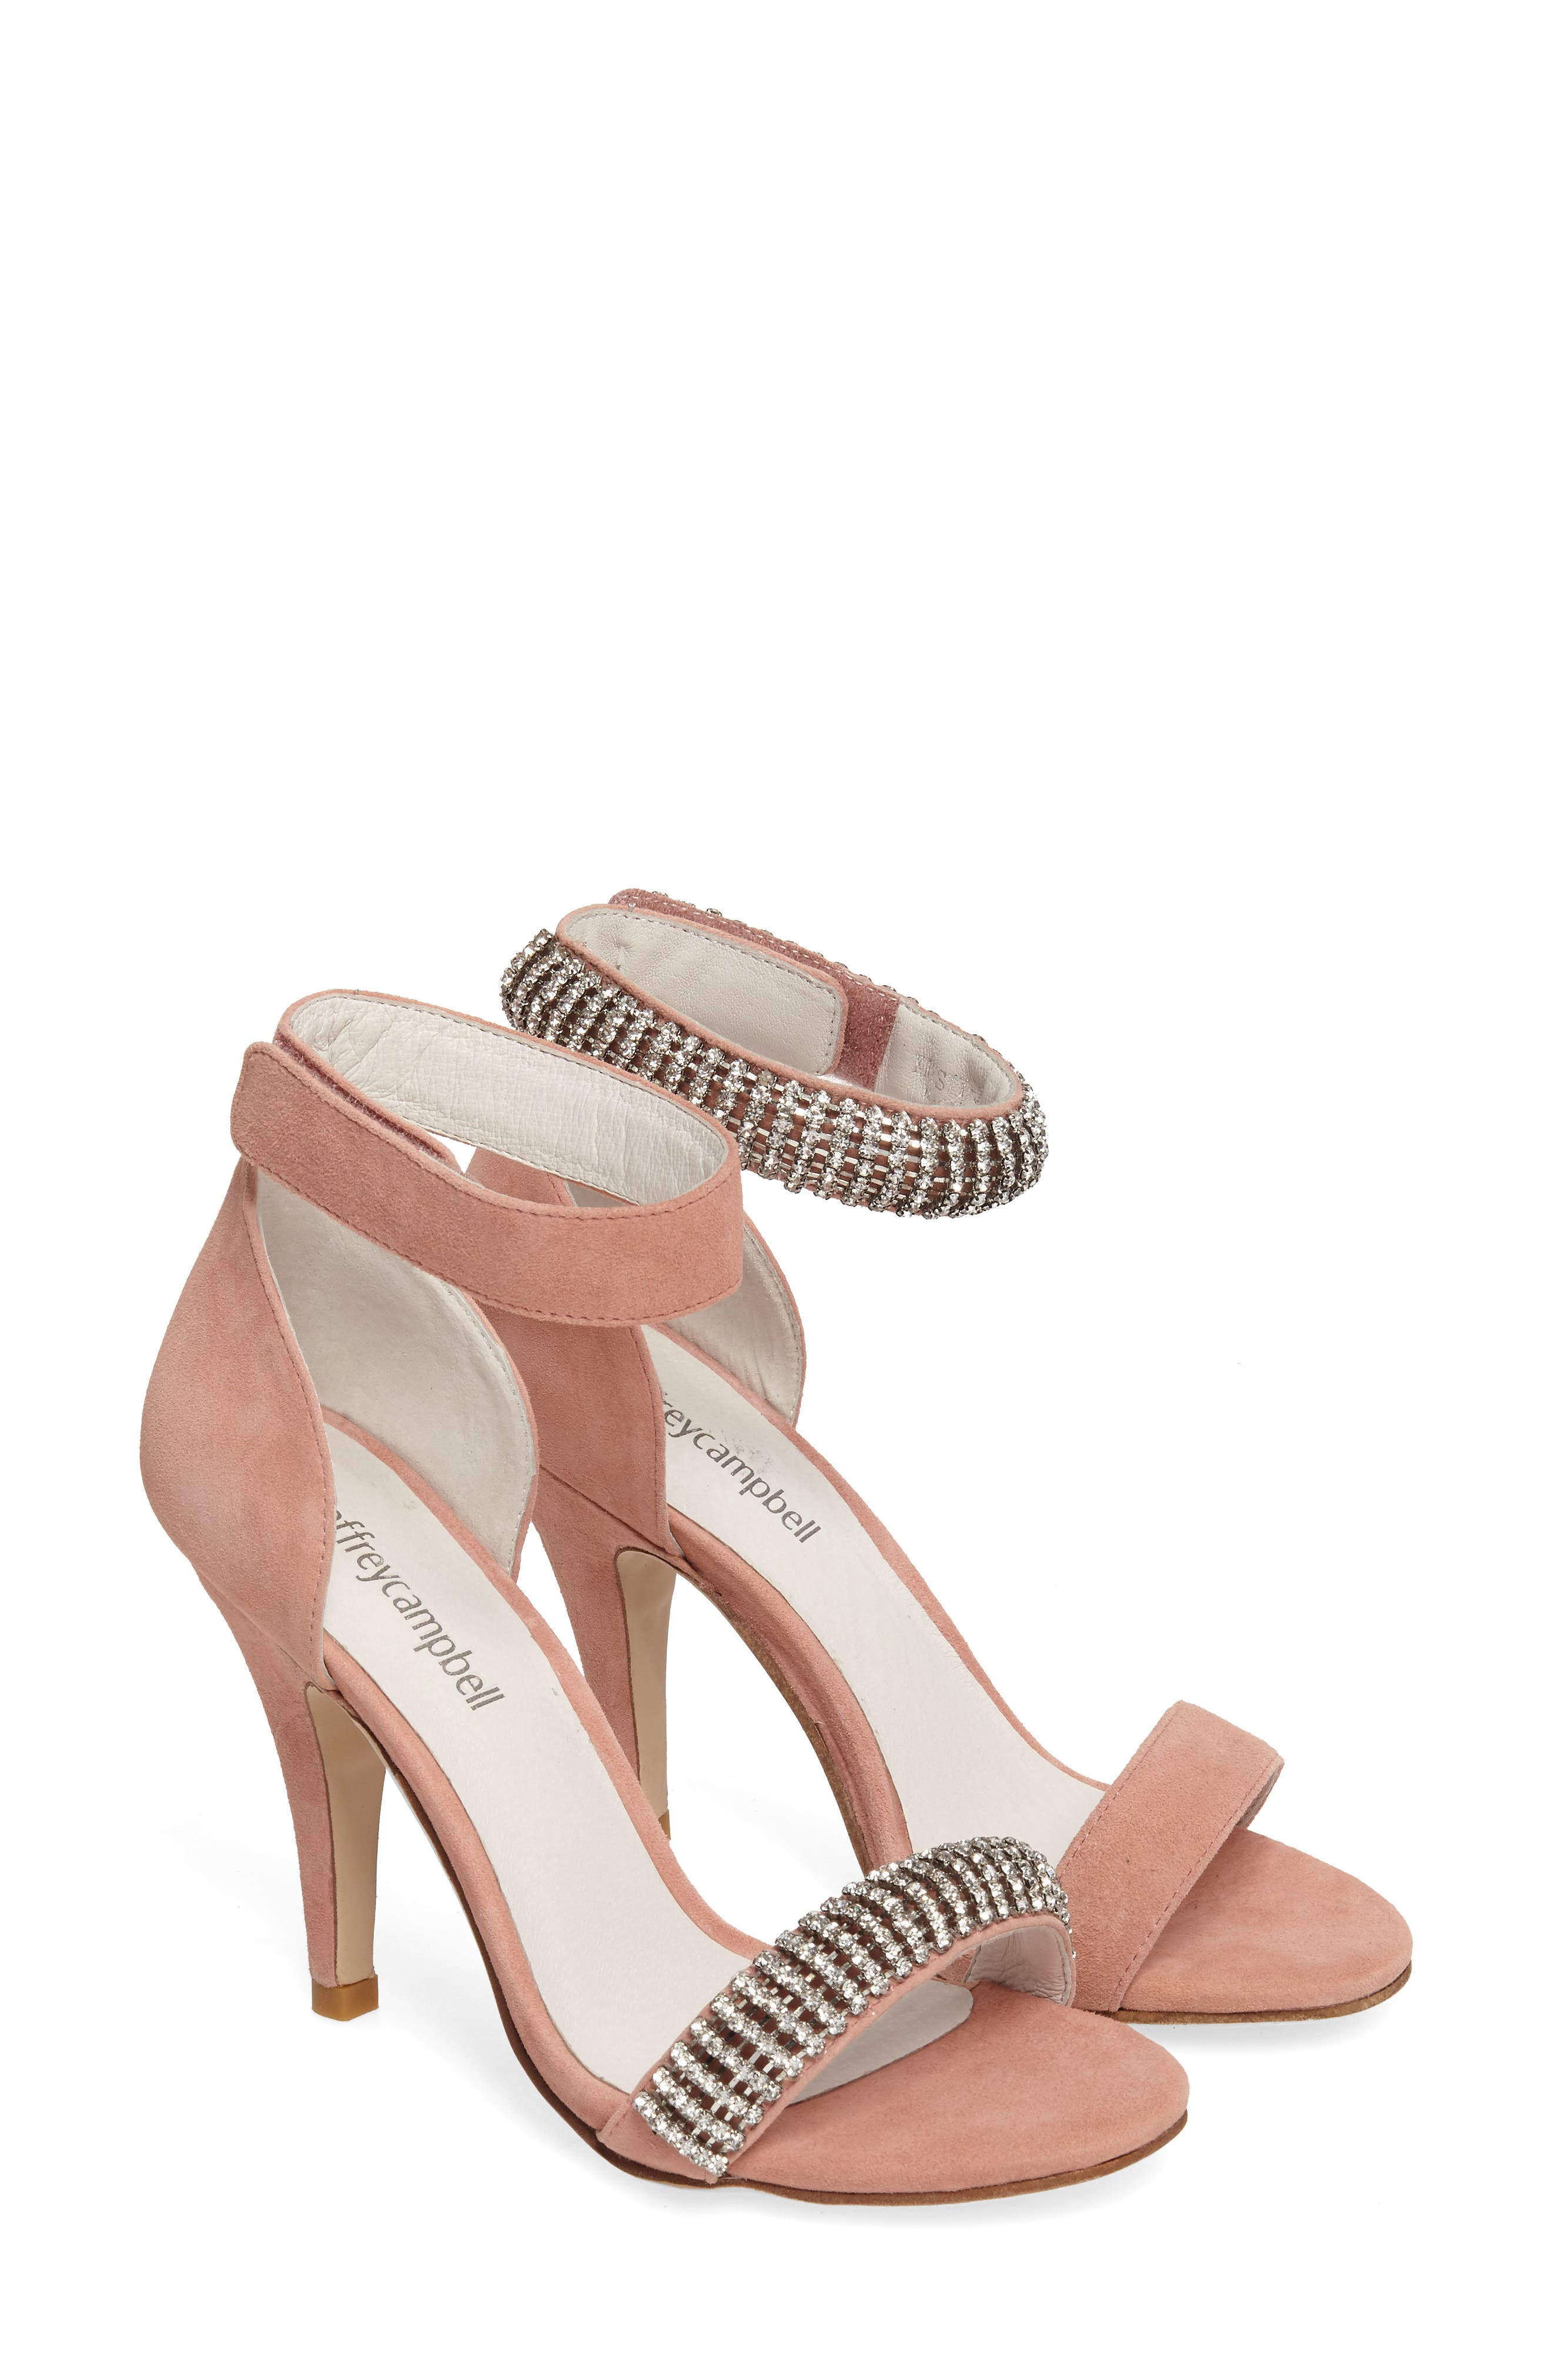 Alternate Image 1 Selected - Jeffrey Campbell Kristy Ankle Strap Sandal (Women)